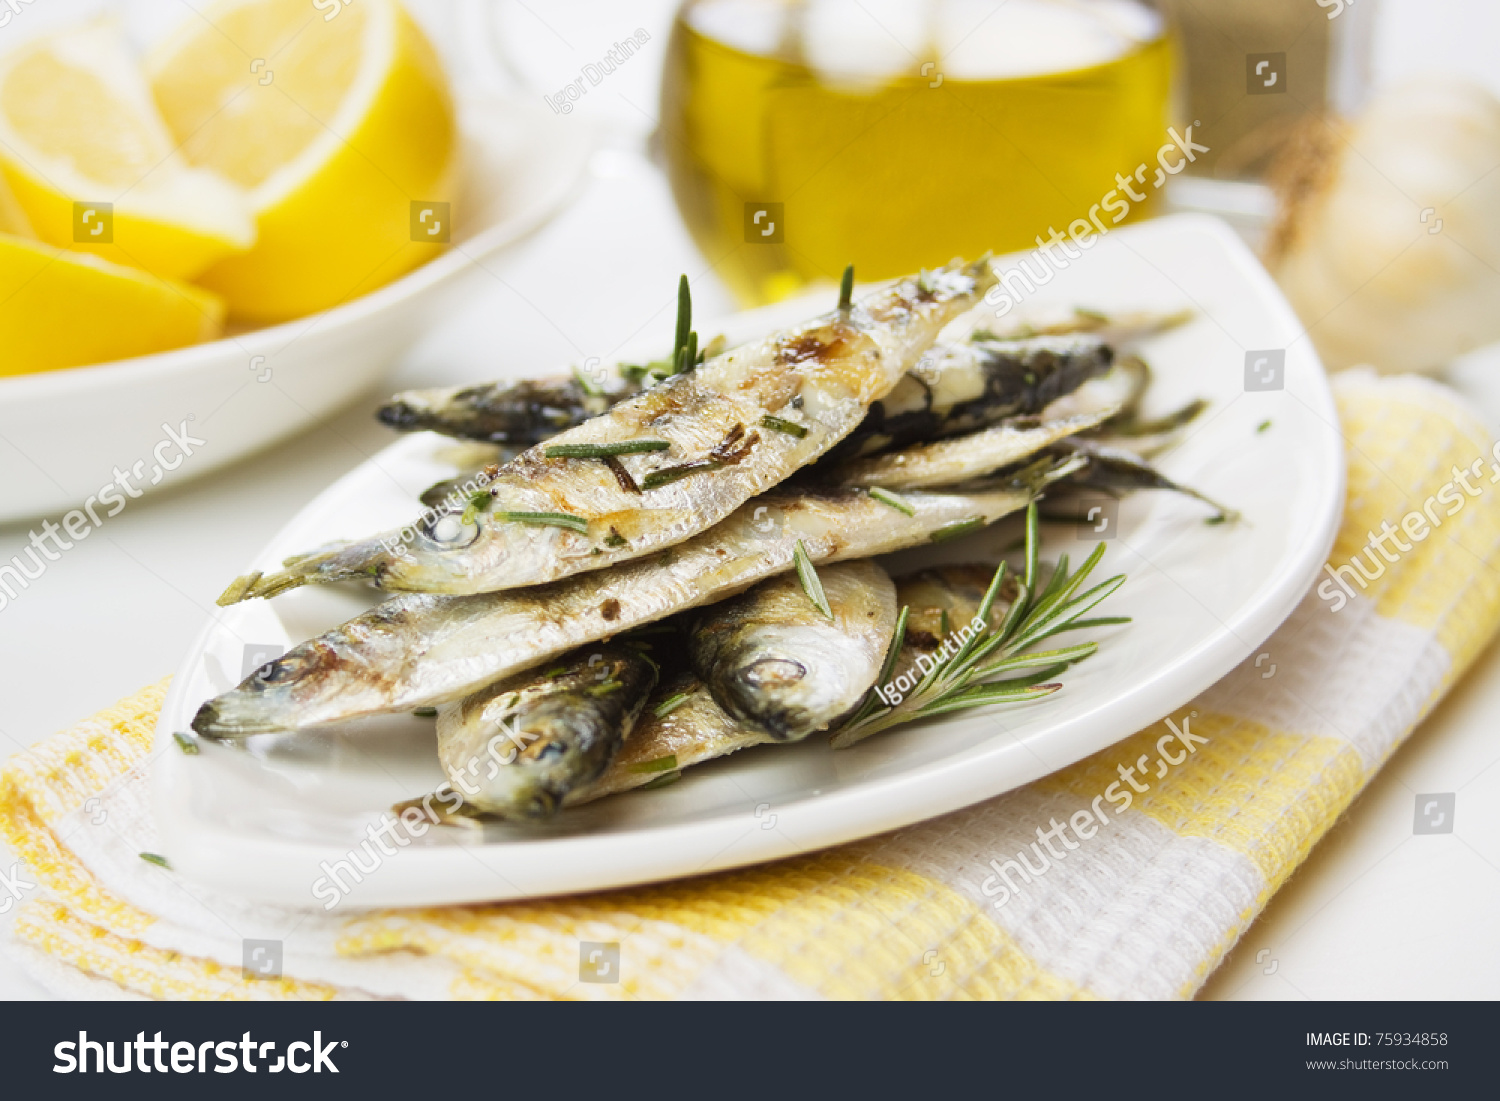 Why serve lemon with fish - answers.com